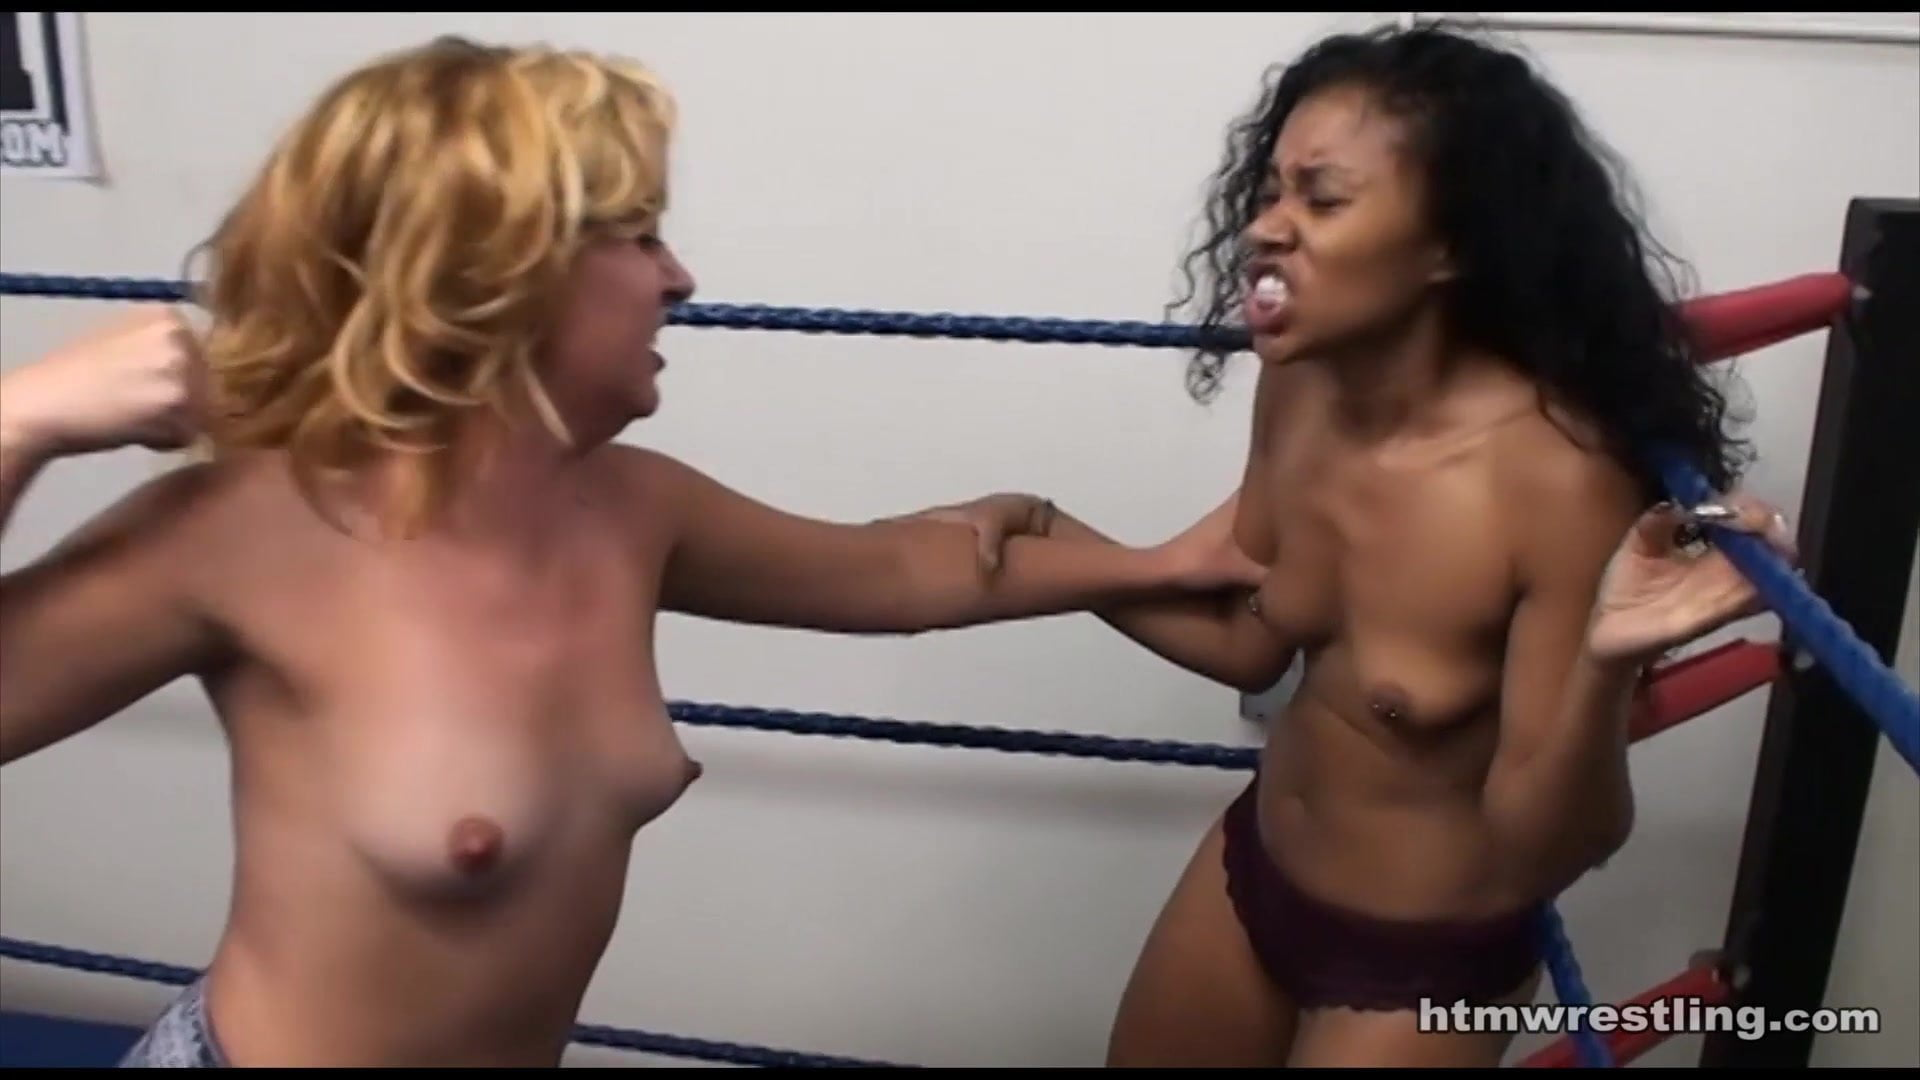 Interracial Catfight Wrestling Black Vs White Free Porn 73-4425